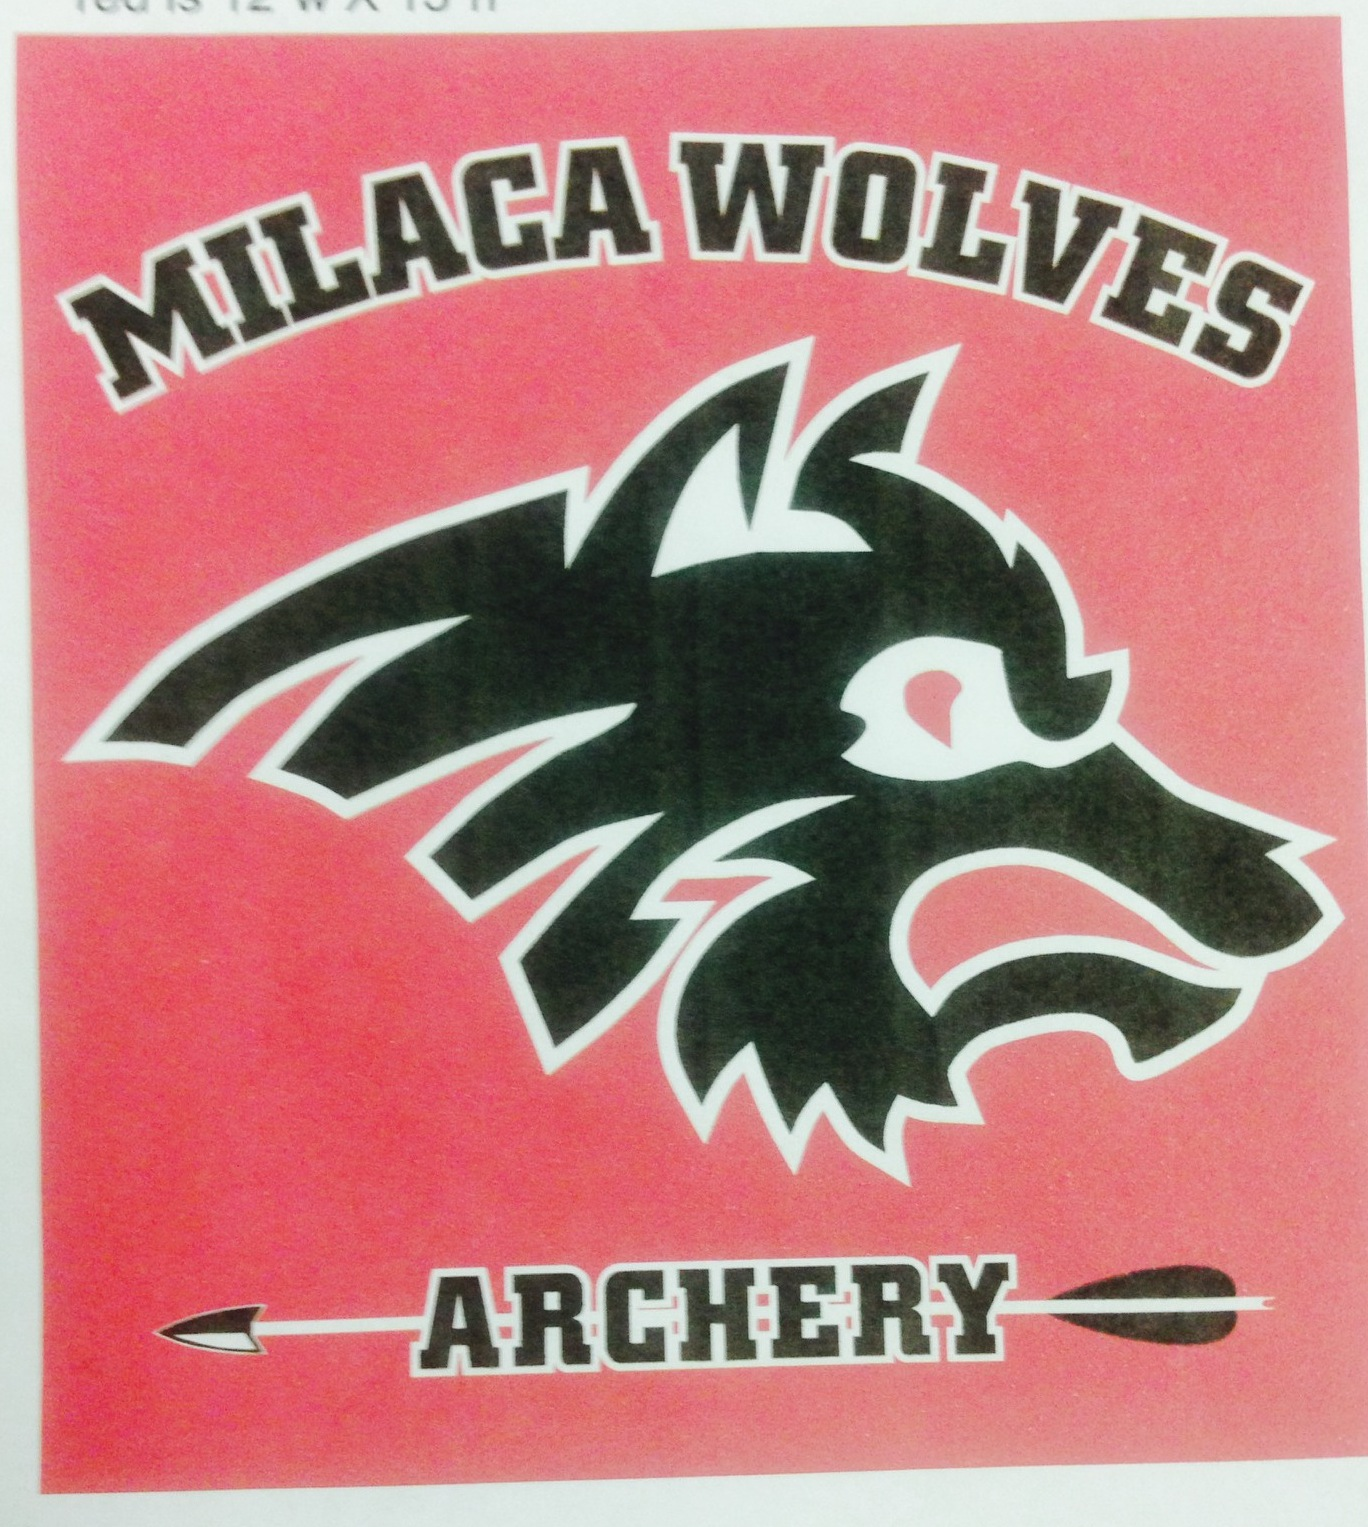 Milaca Archery Team